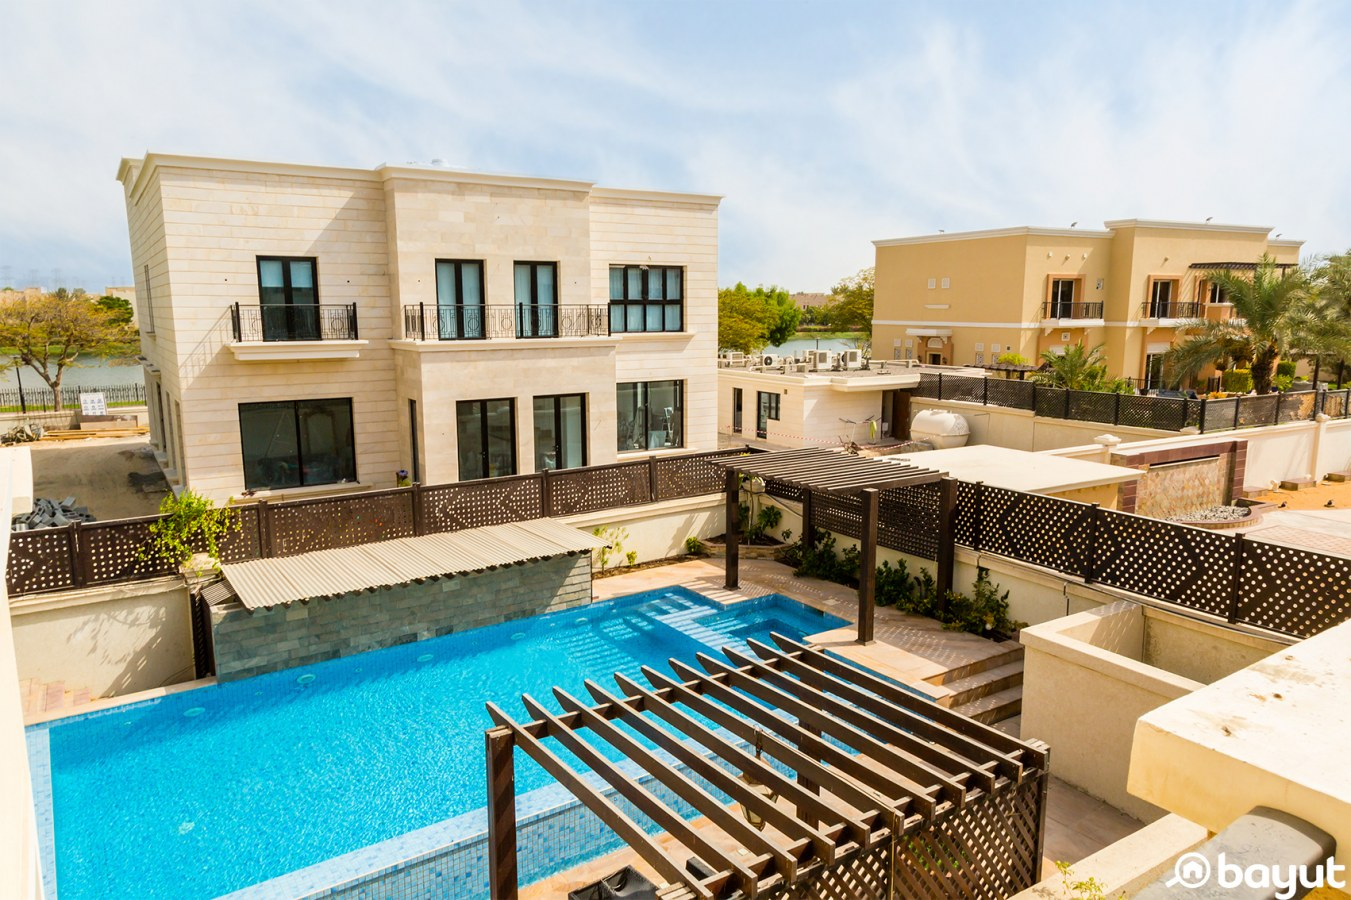 House of the Week with Bayut: 6-Bedroom Villa in Emirates Hills, View of the Pool